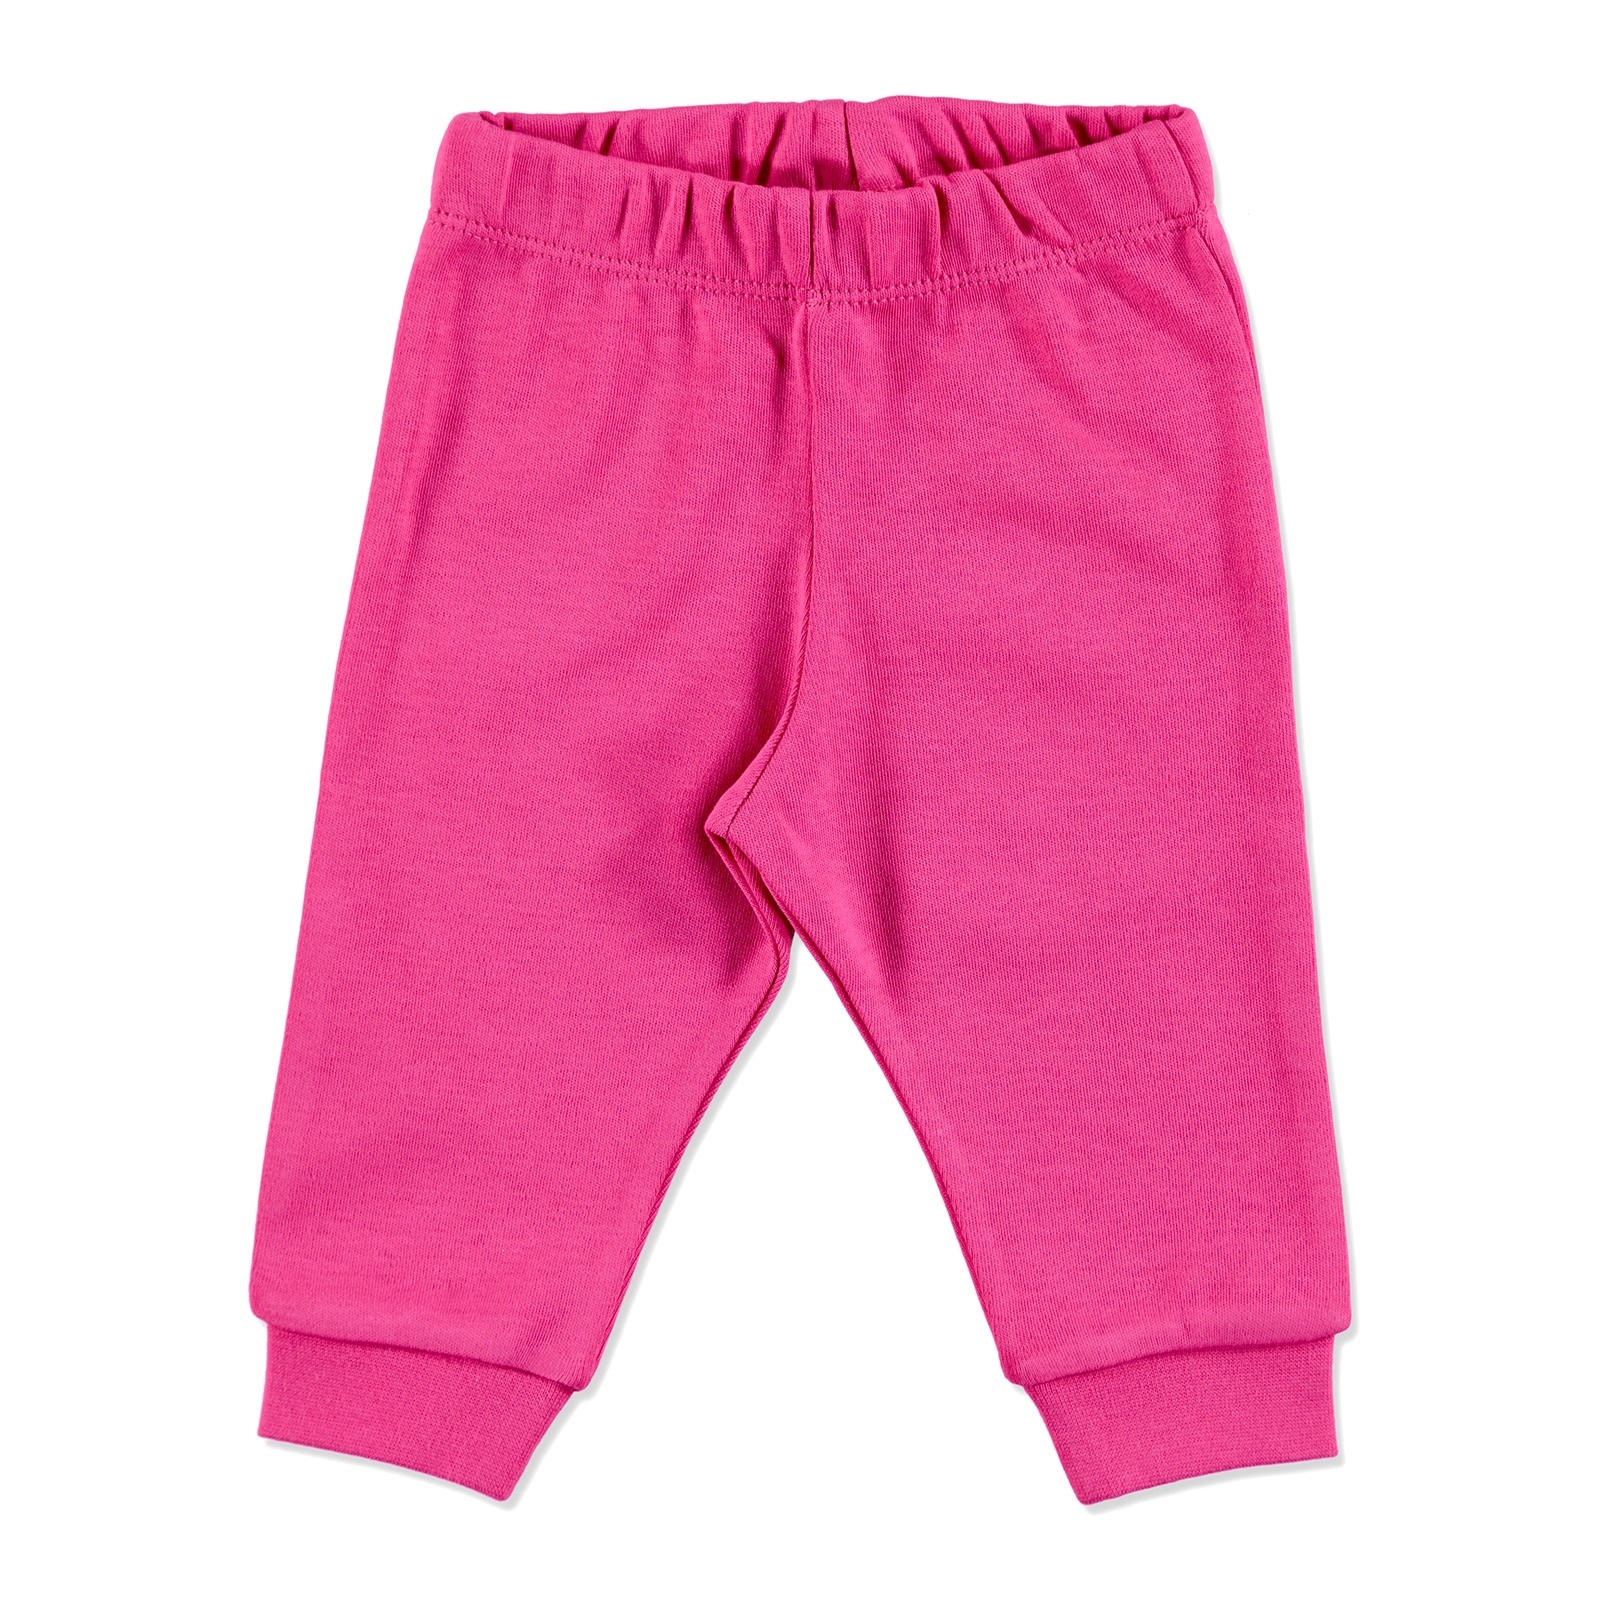 Ebebek HelloBaby Baby Rib Single Trouser